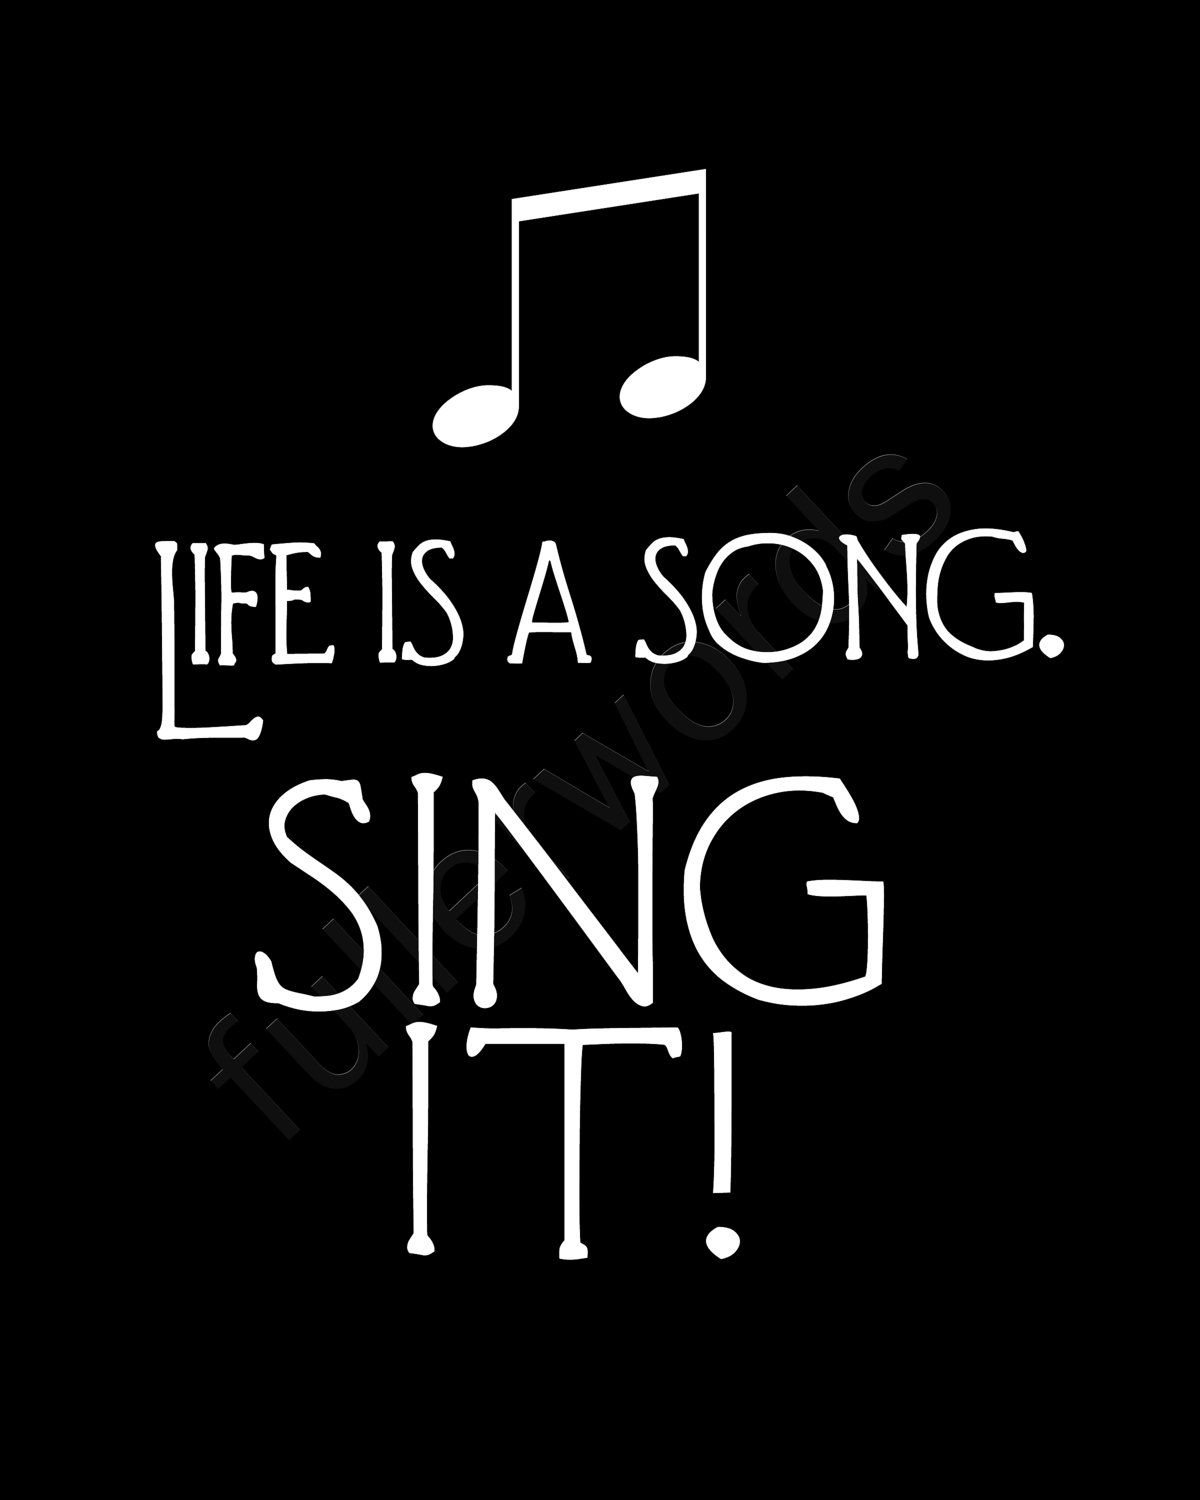 100 Inspirational And Motivational Quotes Of All Time 20 Singing Quotes Music Quotes Song Quotes